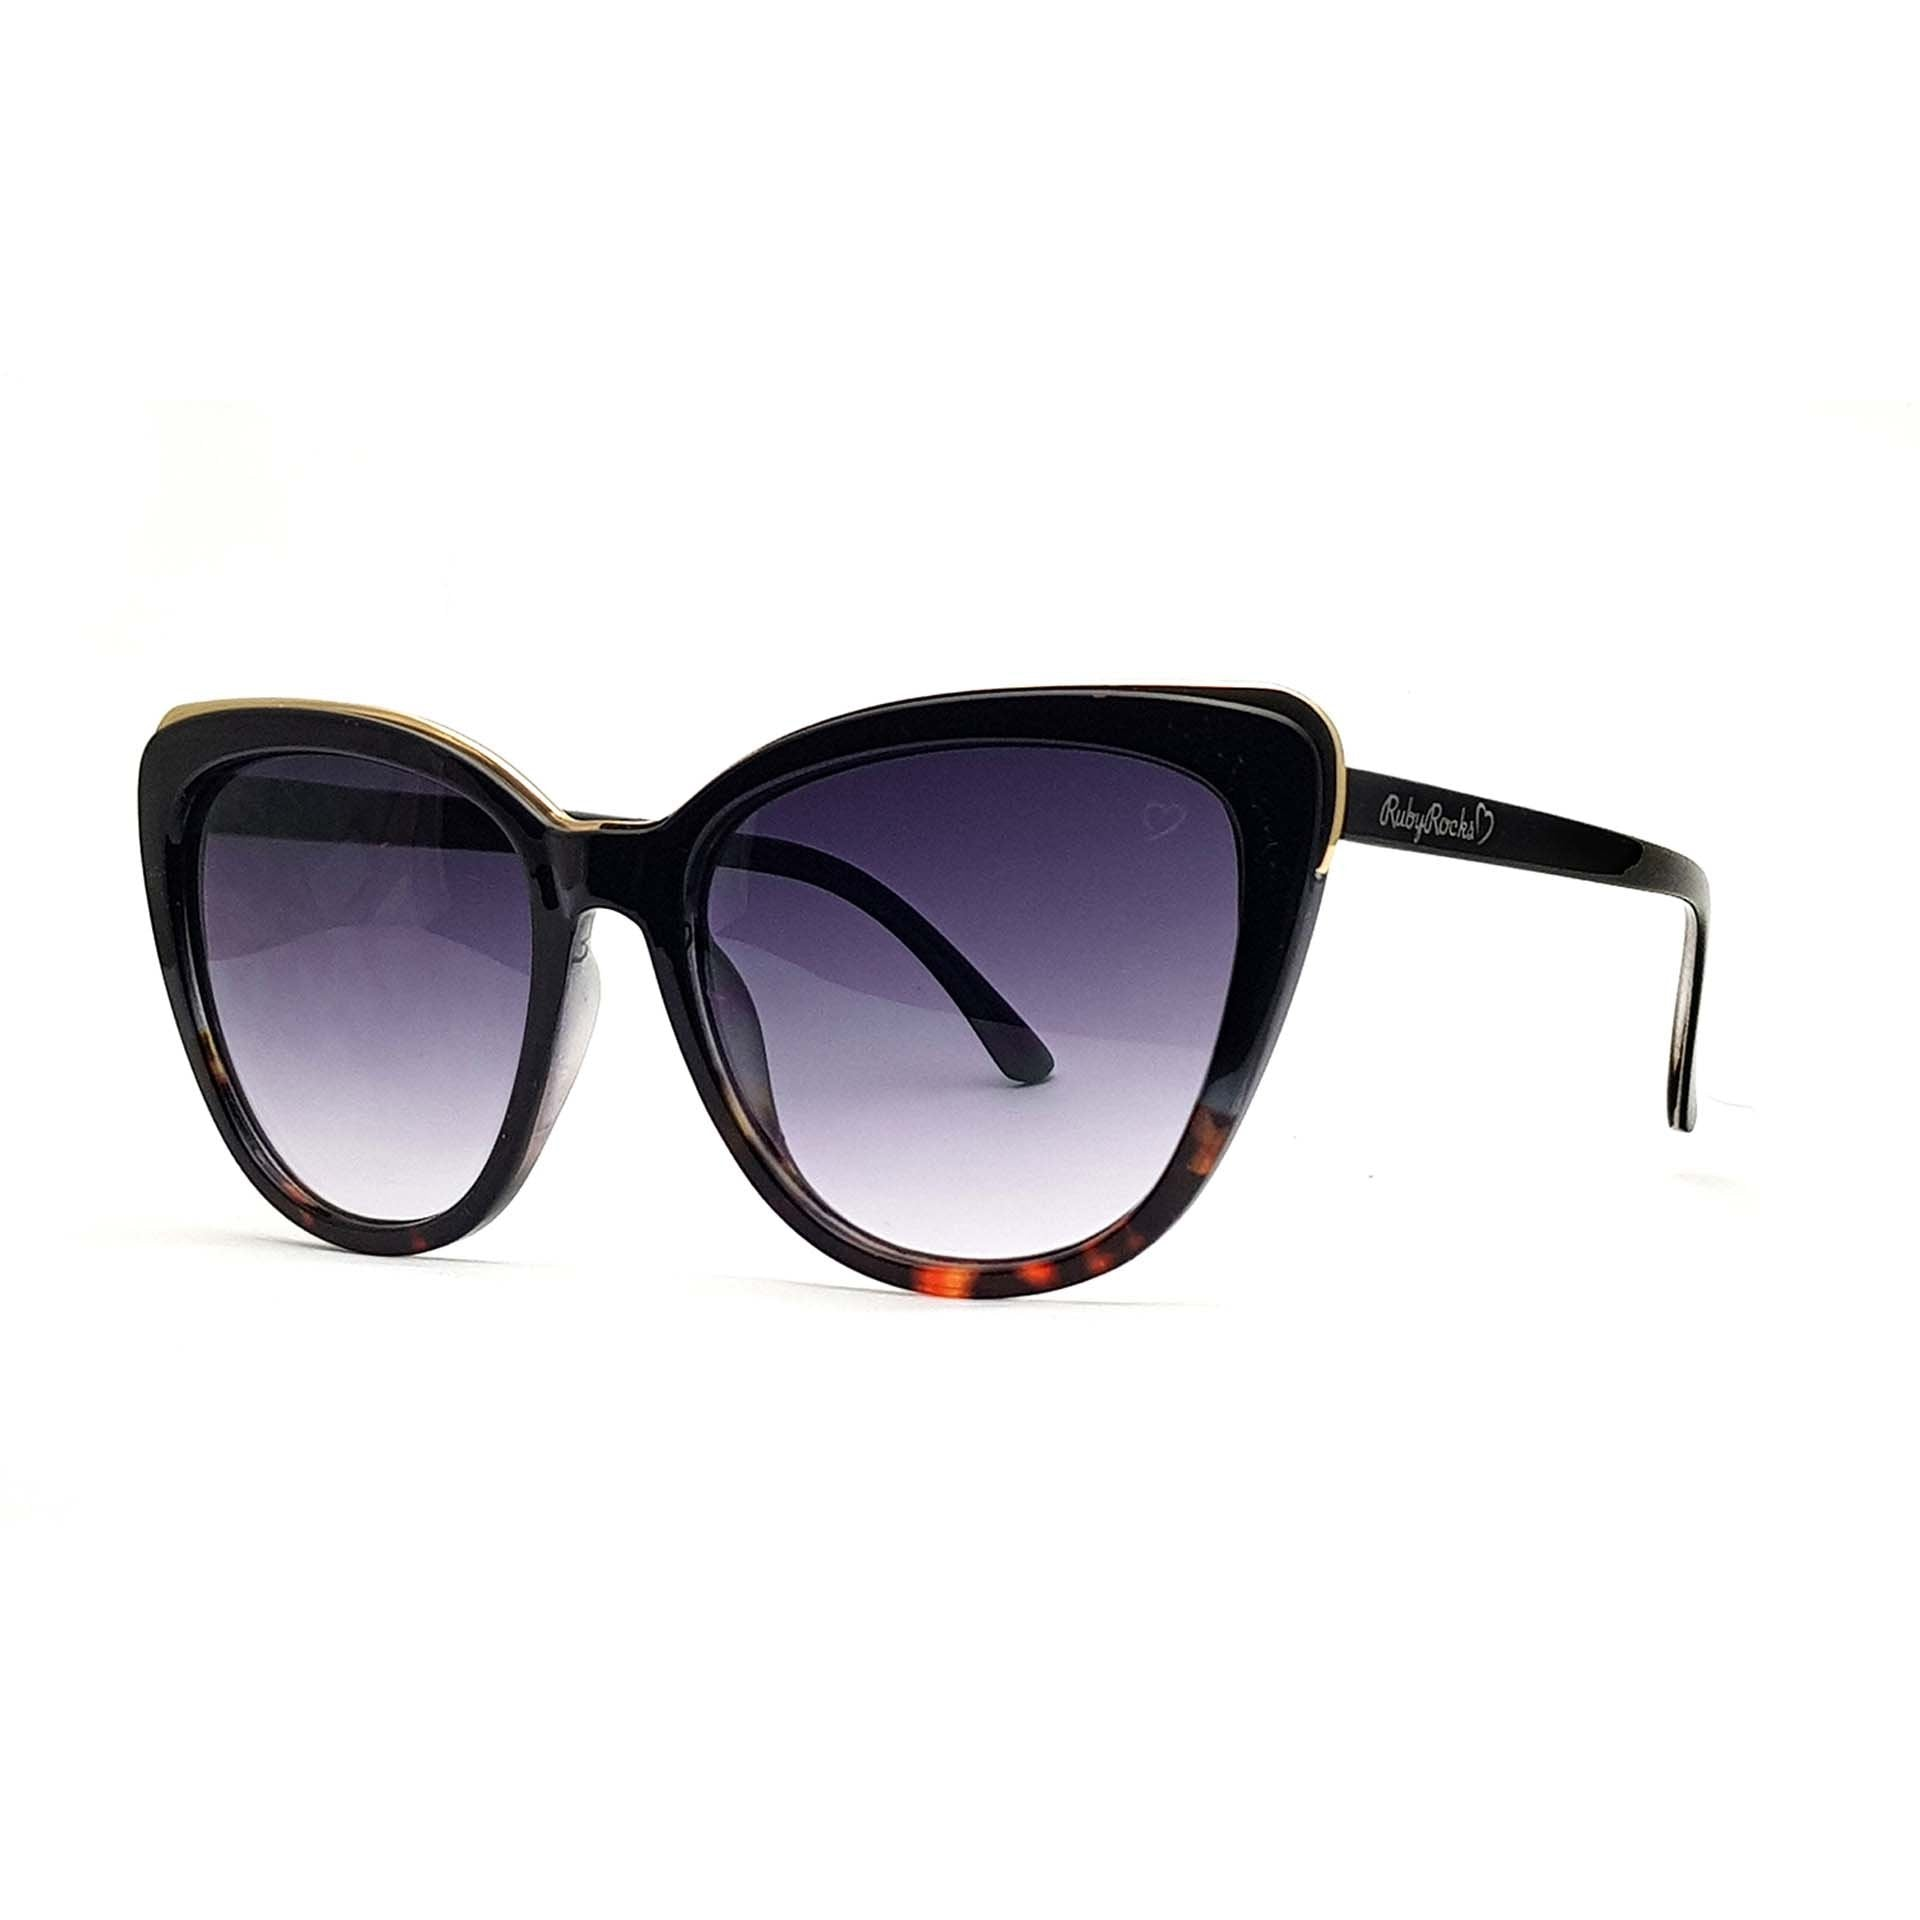 'Roseanne' Cateye Sunglasses In Black & Tort